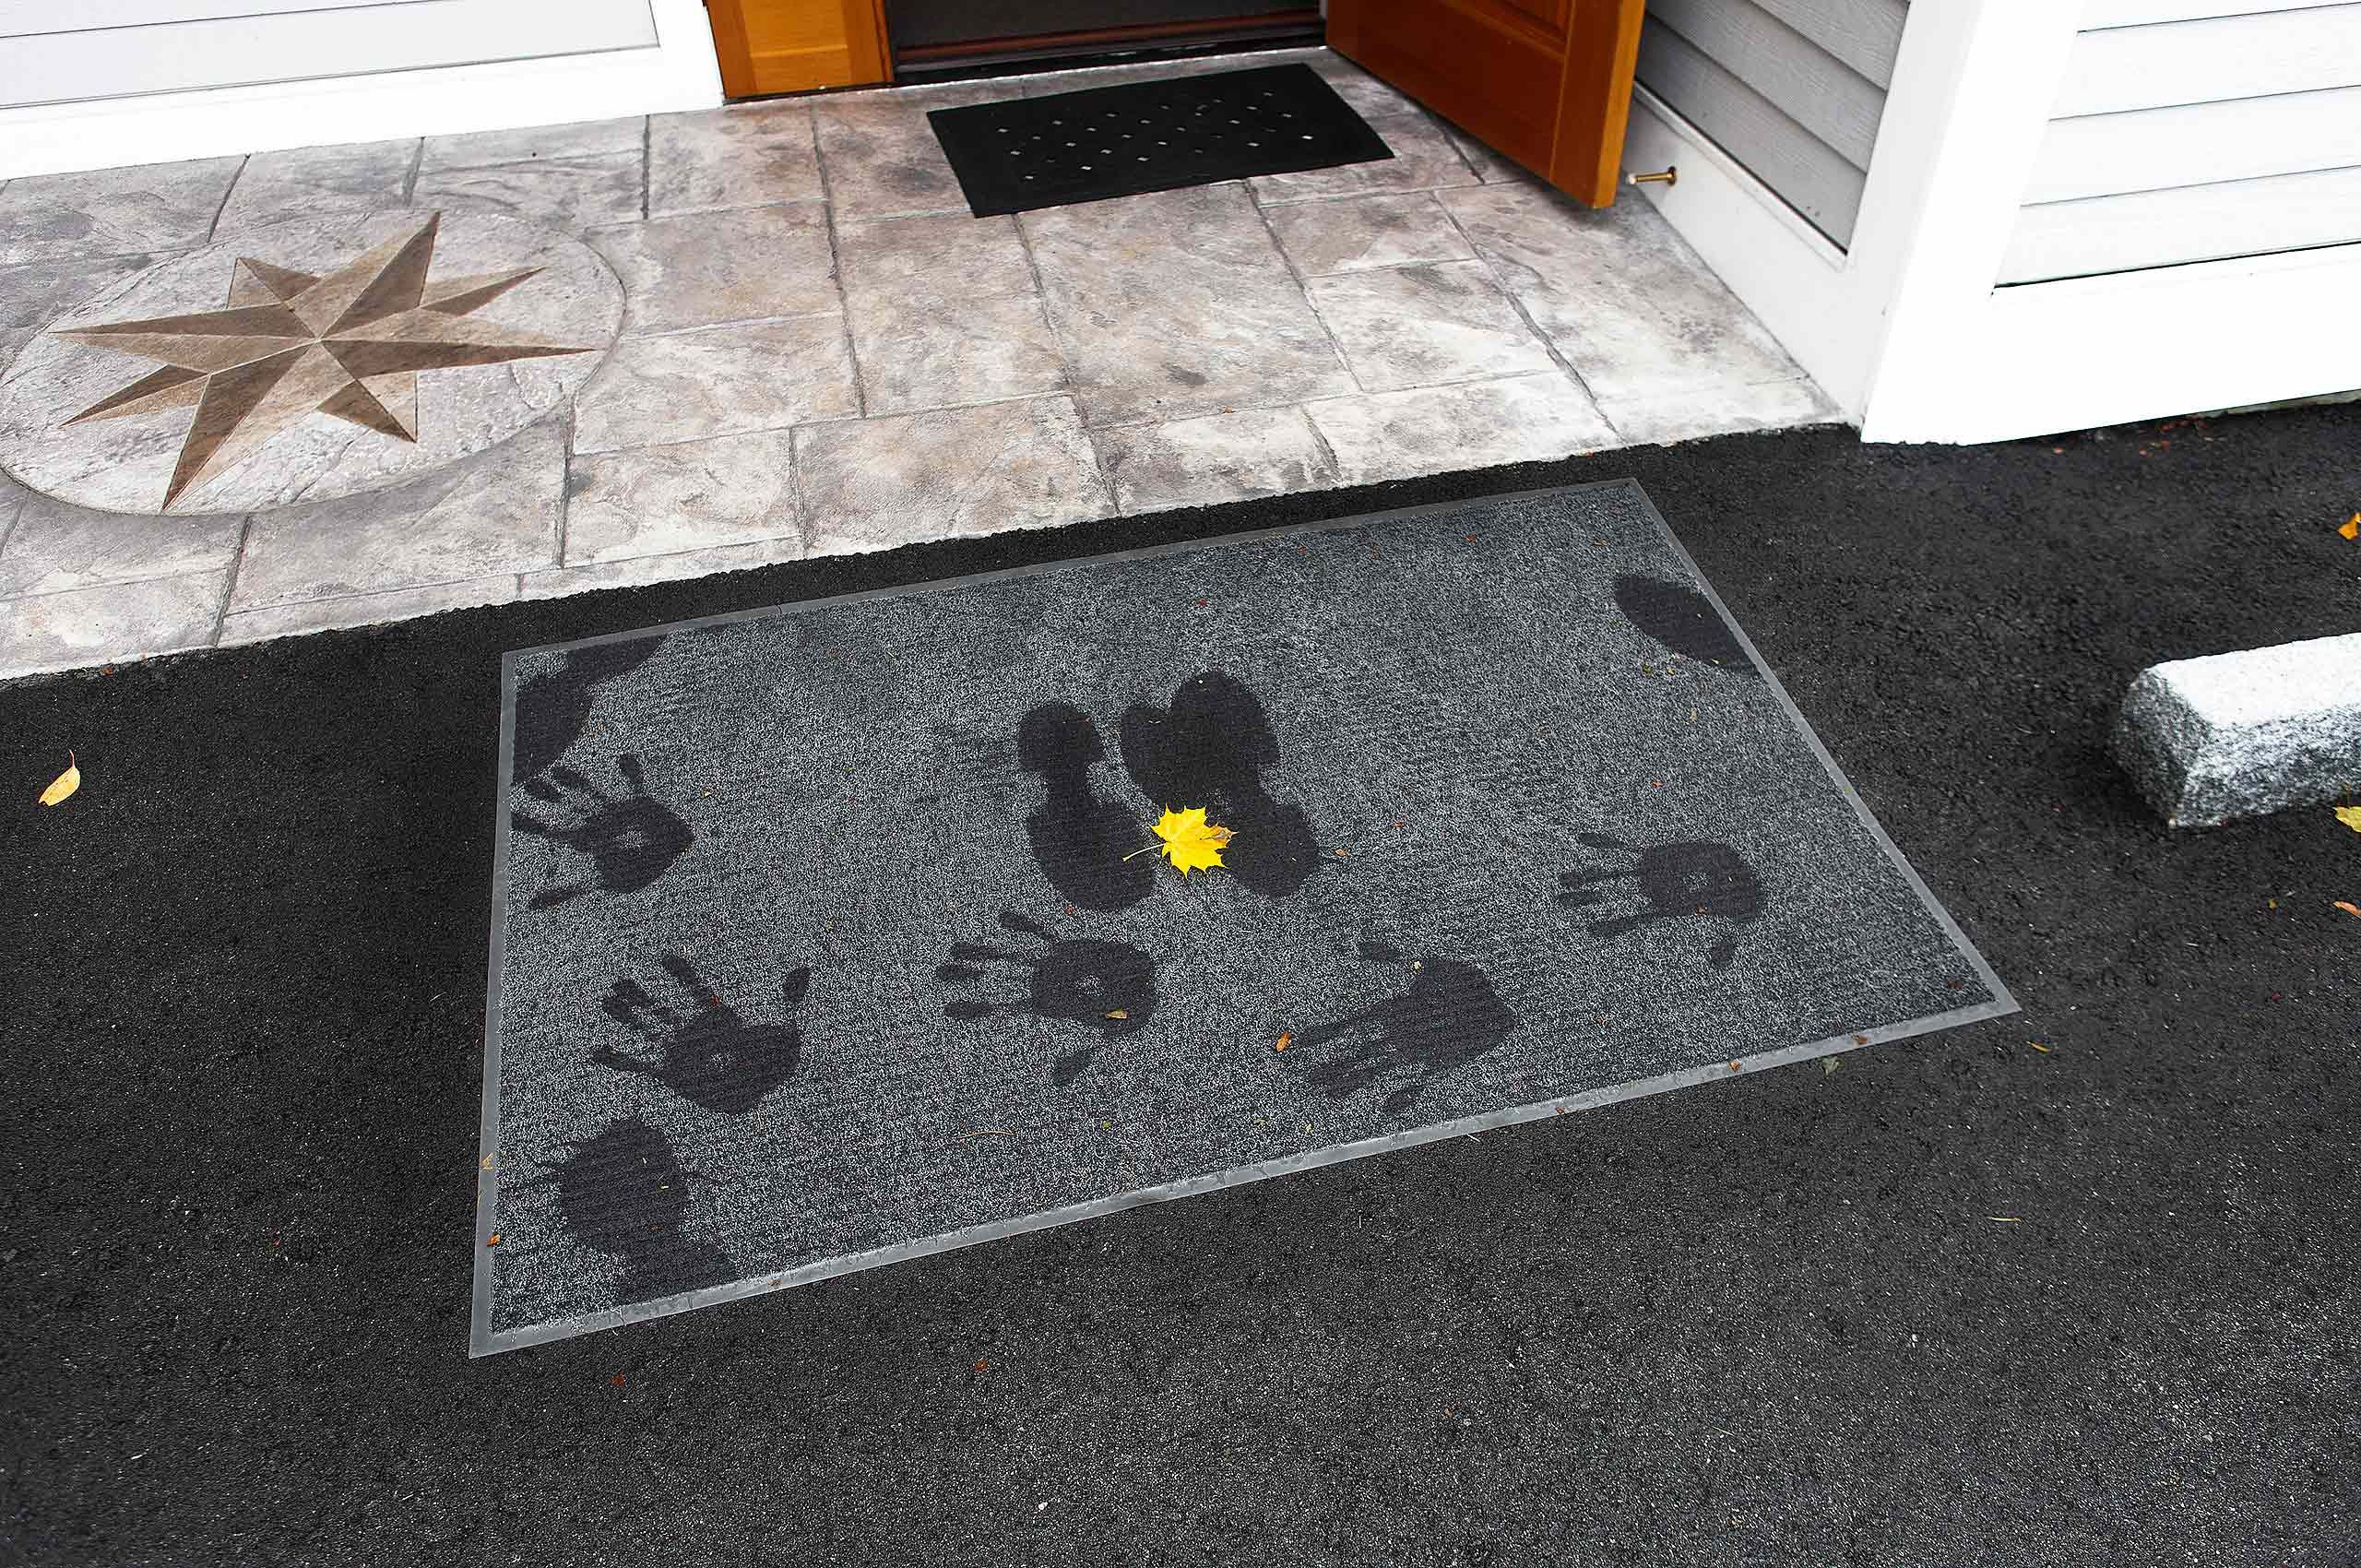 Footprints and handprints on doormat at Warren Roos Photo studio on South Portland Maine compass rose in background